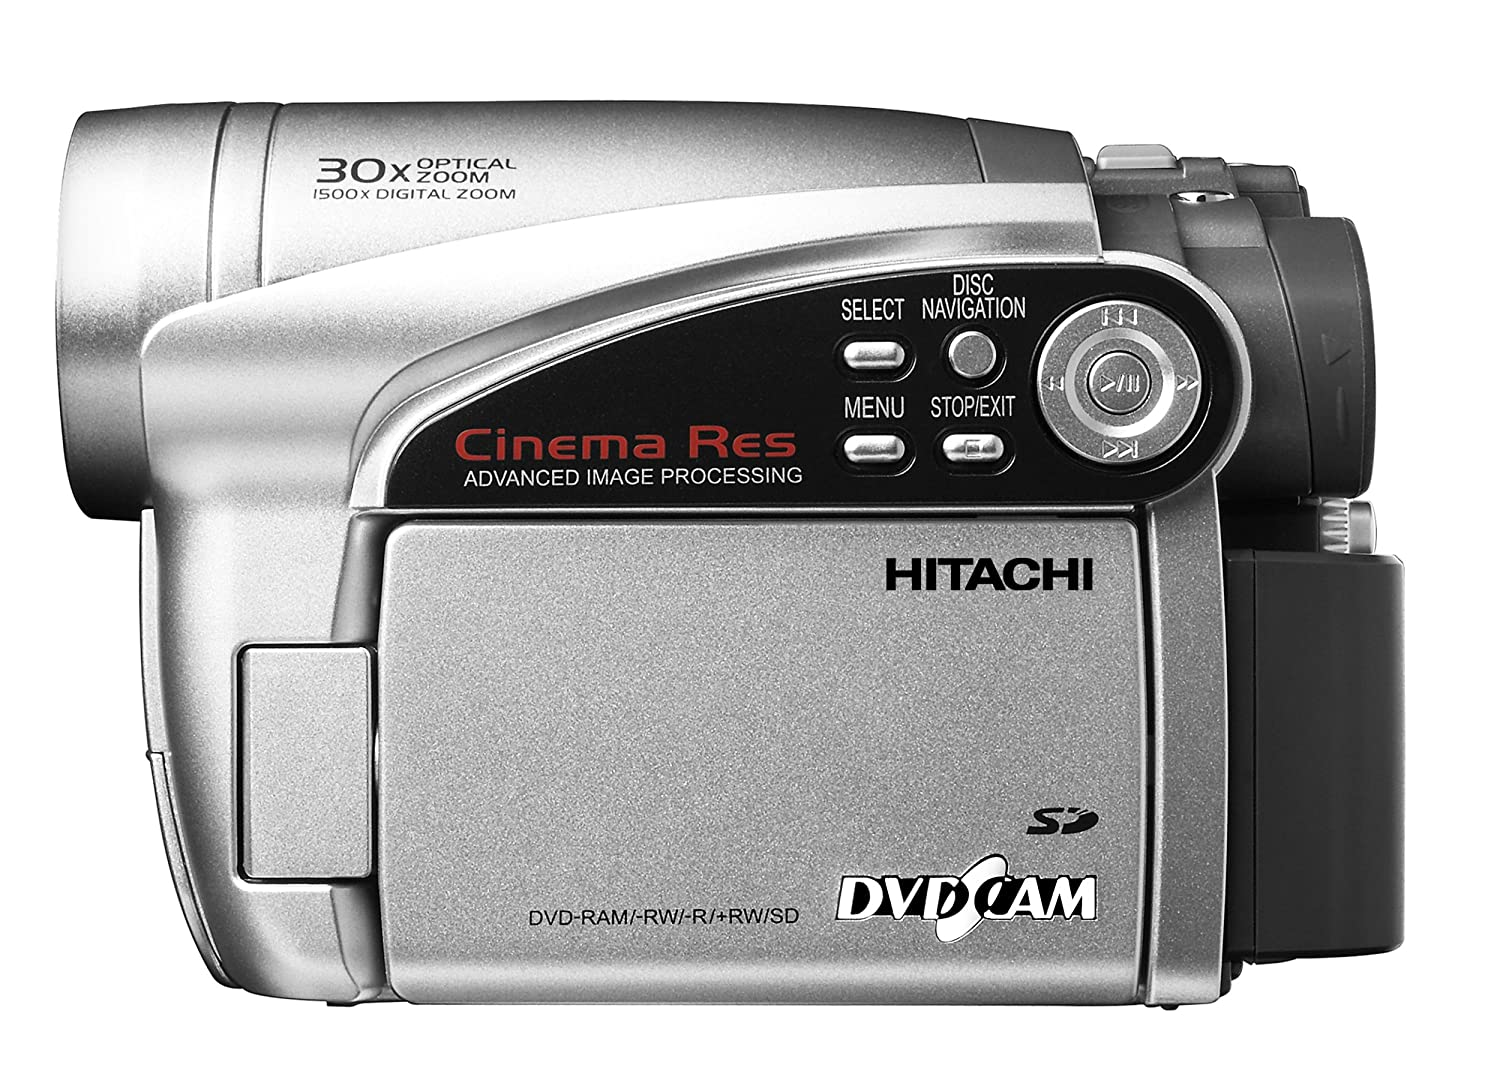 amazon com hitachi dzgx5020a dvd camcorder with 30x optical zoom rh amazon com hitachi dvd cam dz-gx5020a user manual hitachi dvd cam dz-gx5020a user manual